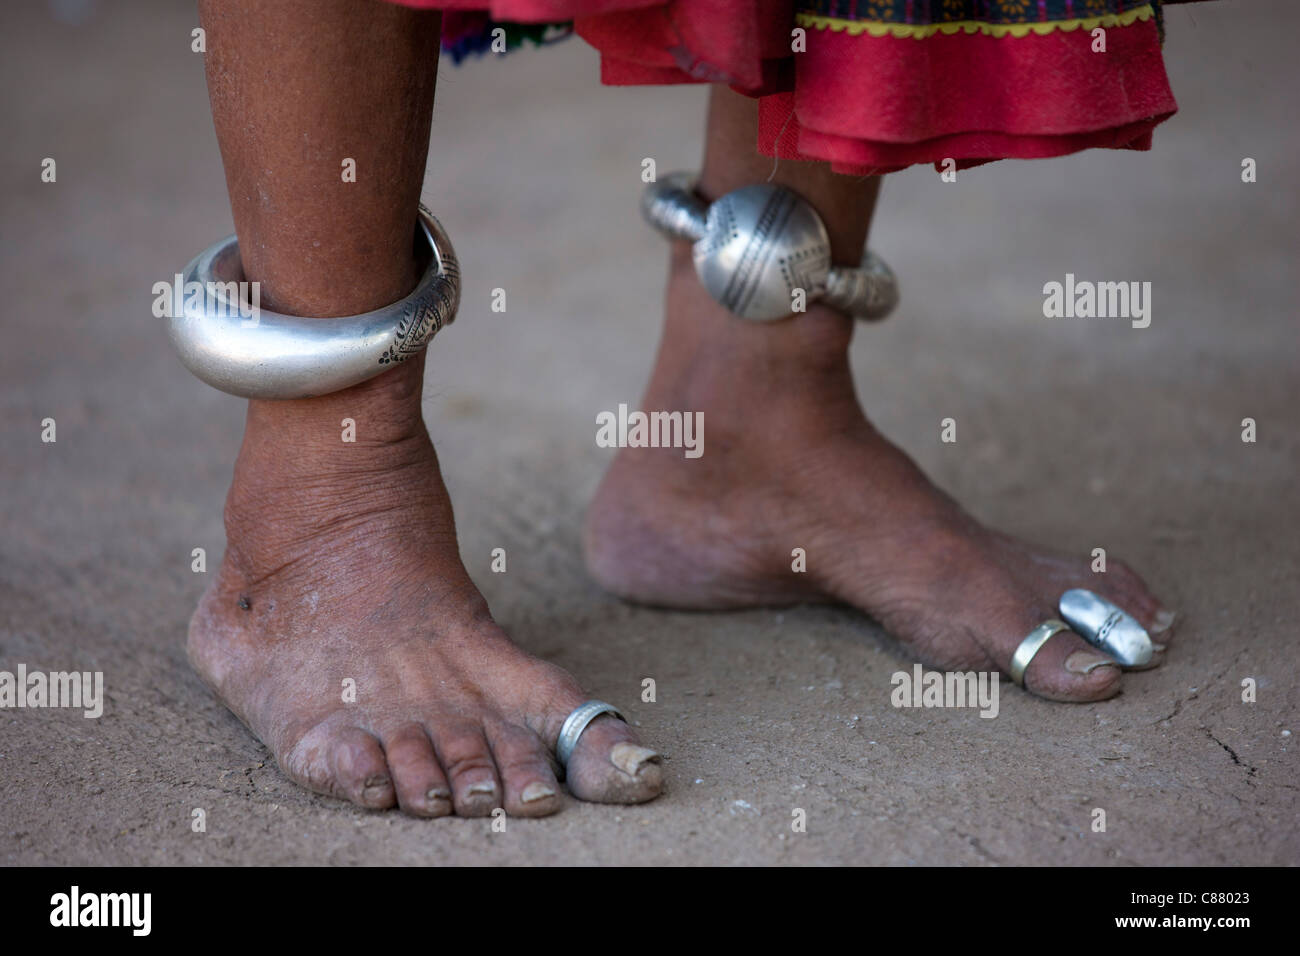 Elderly Indian Woman With Ankle Bracelets And Toe Rings At Home In Narlai  Village In Rajasthan